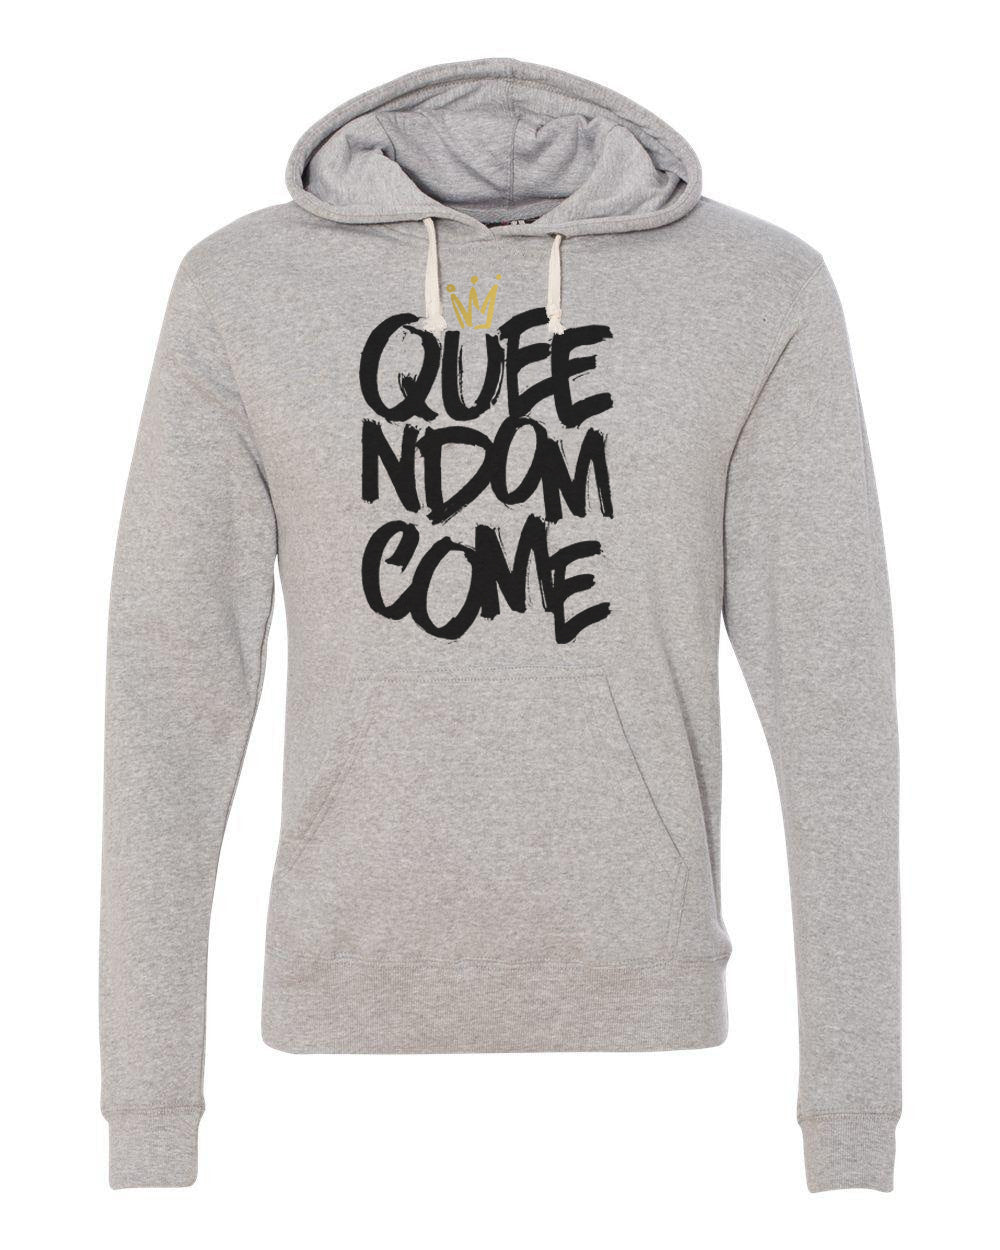 Queendom Come - Hoodie (Vintage Grey)